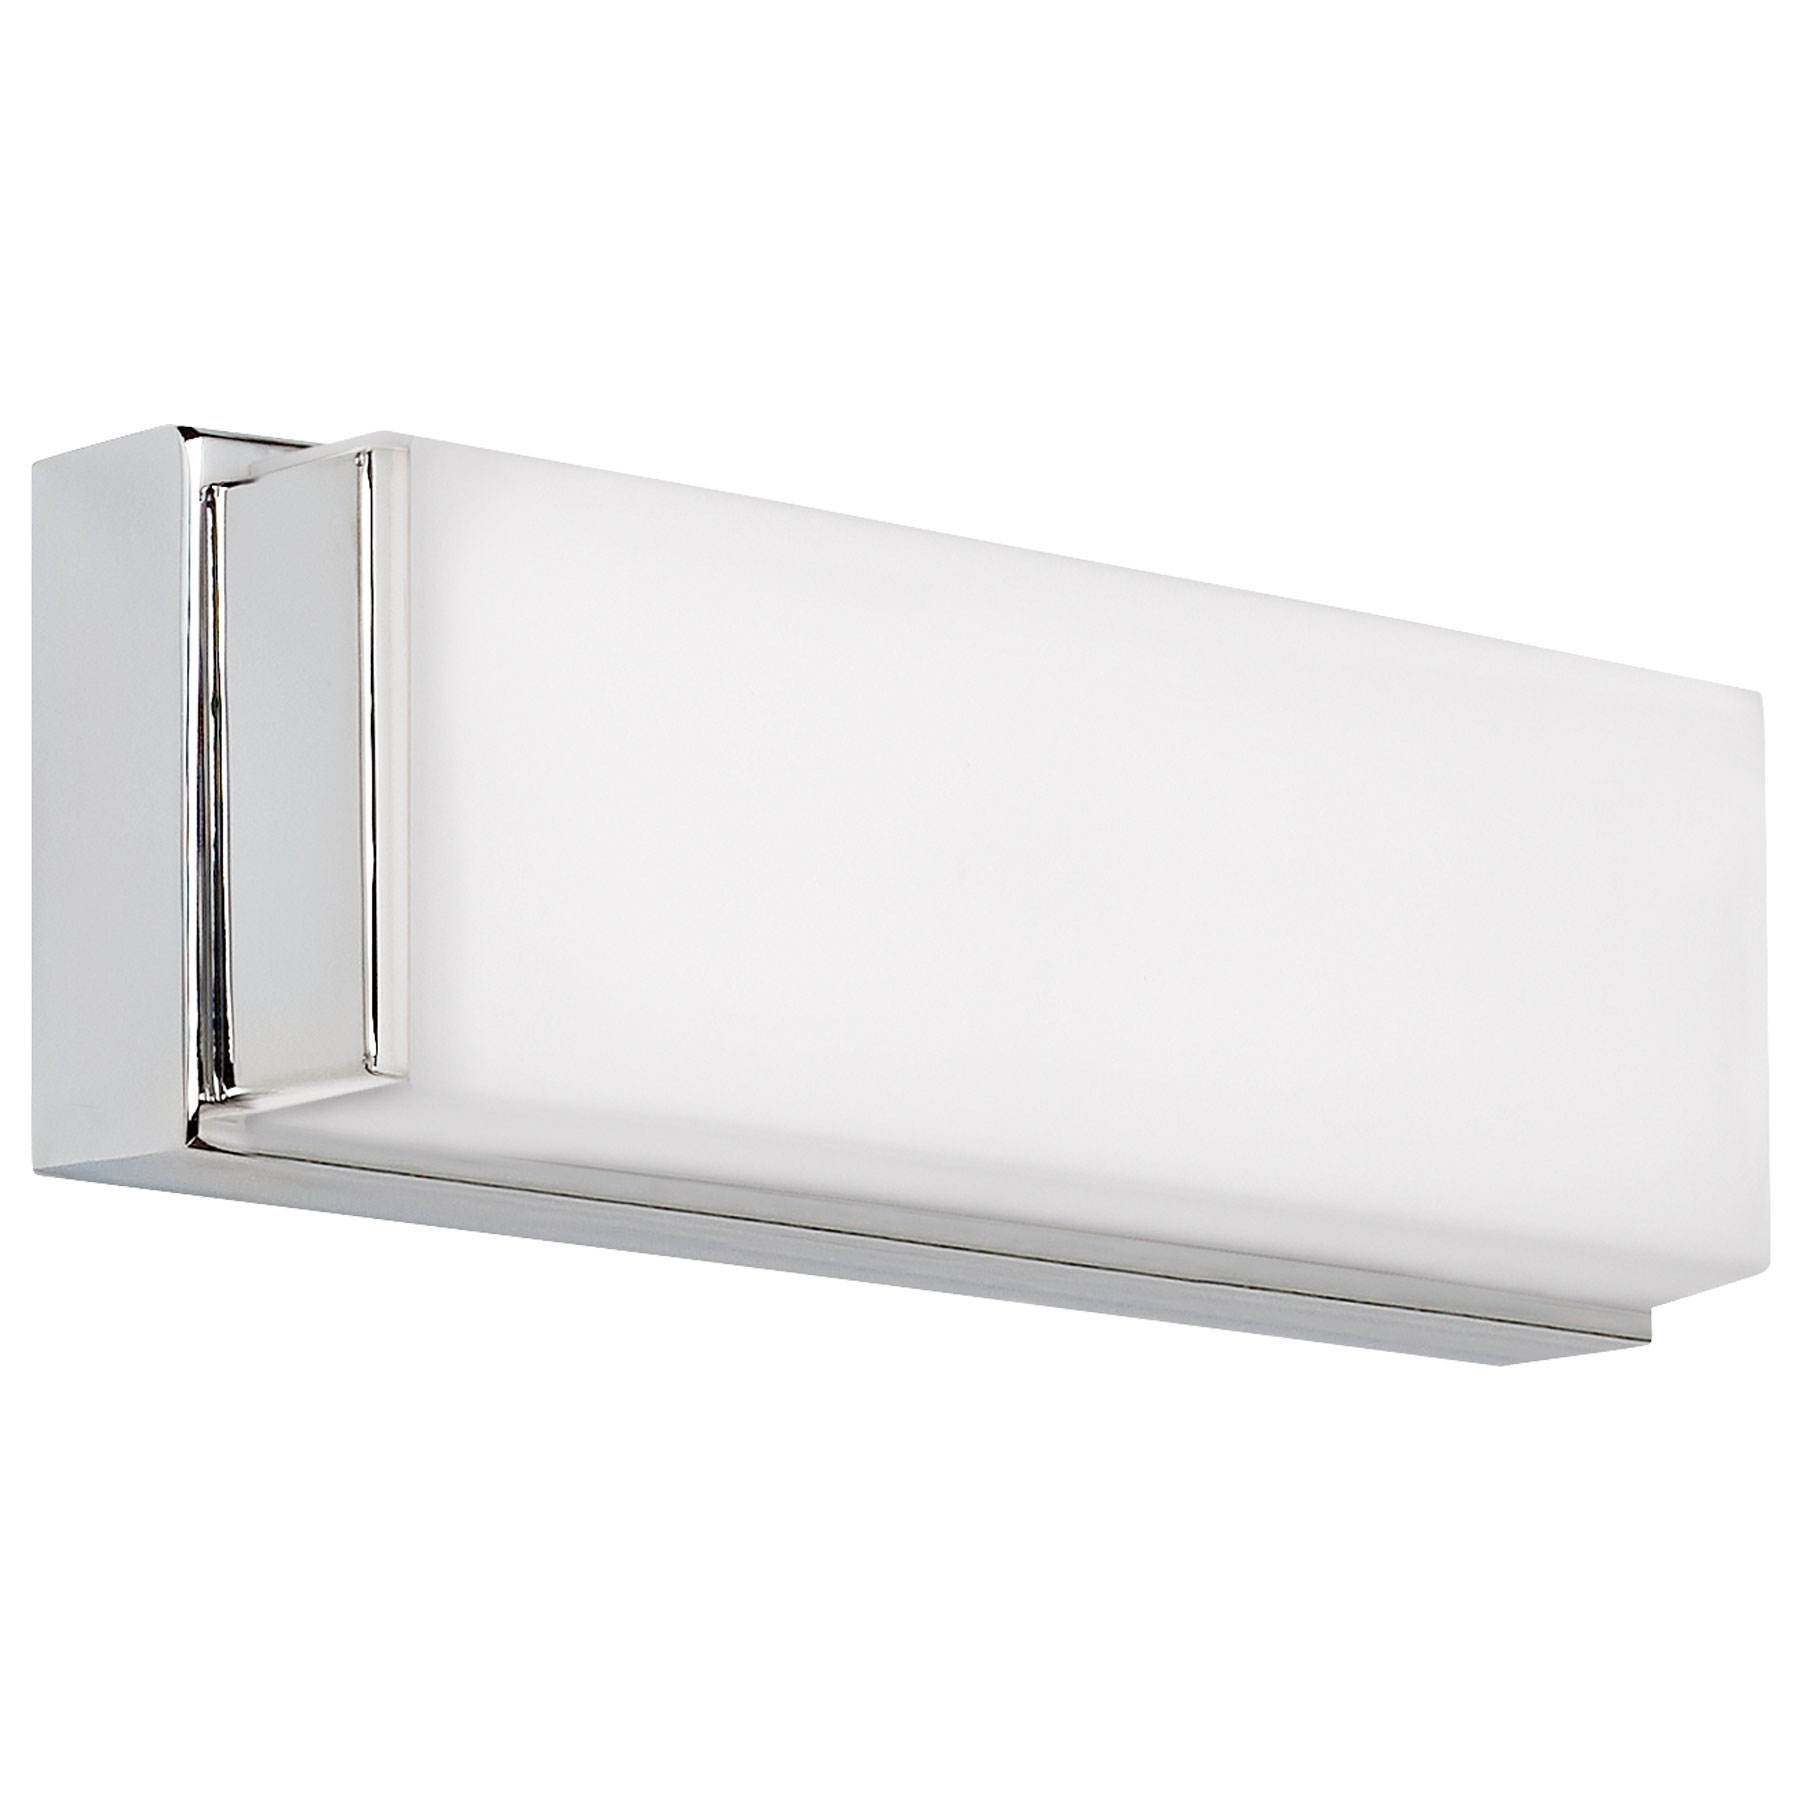 bath chrome wide finish vanity and inch glass house fairfield in clear savoy image shown lighting light cfm item magnifying